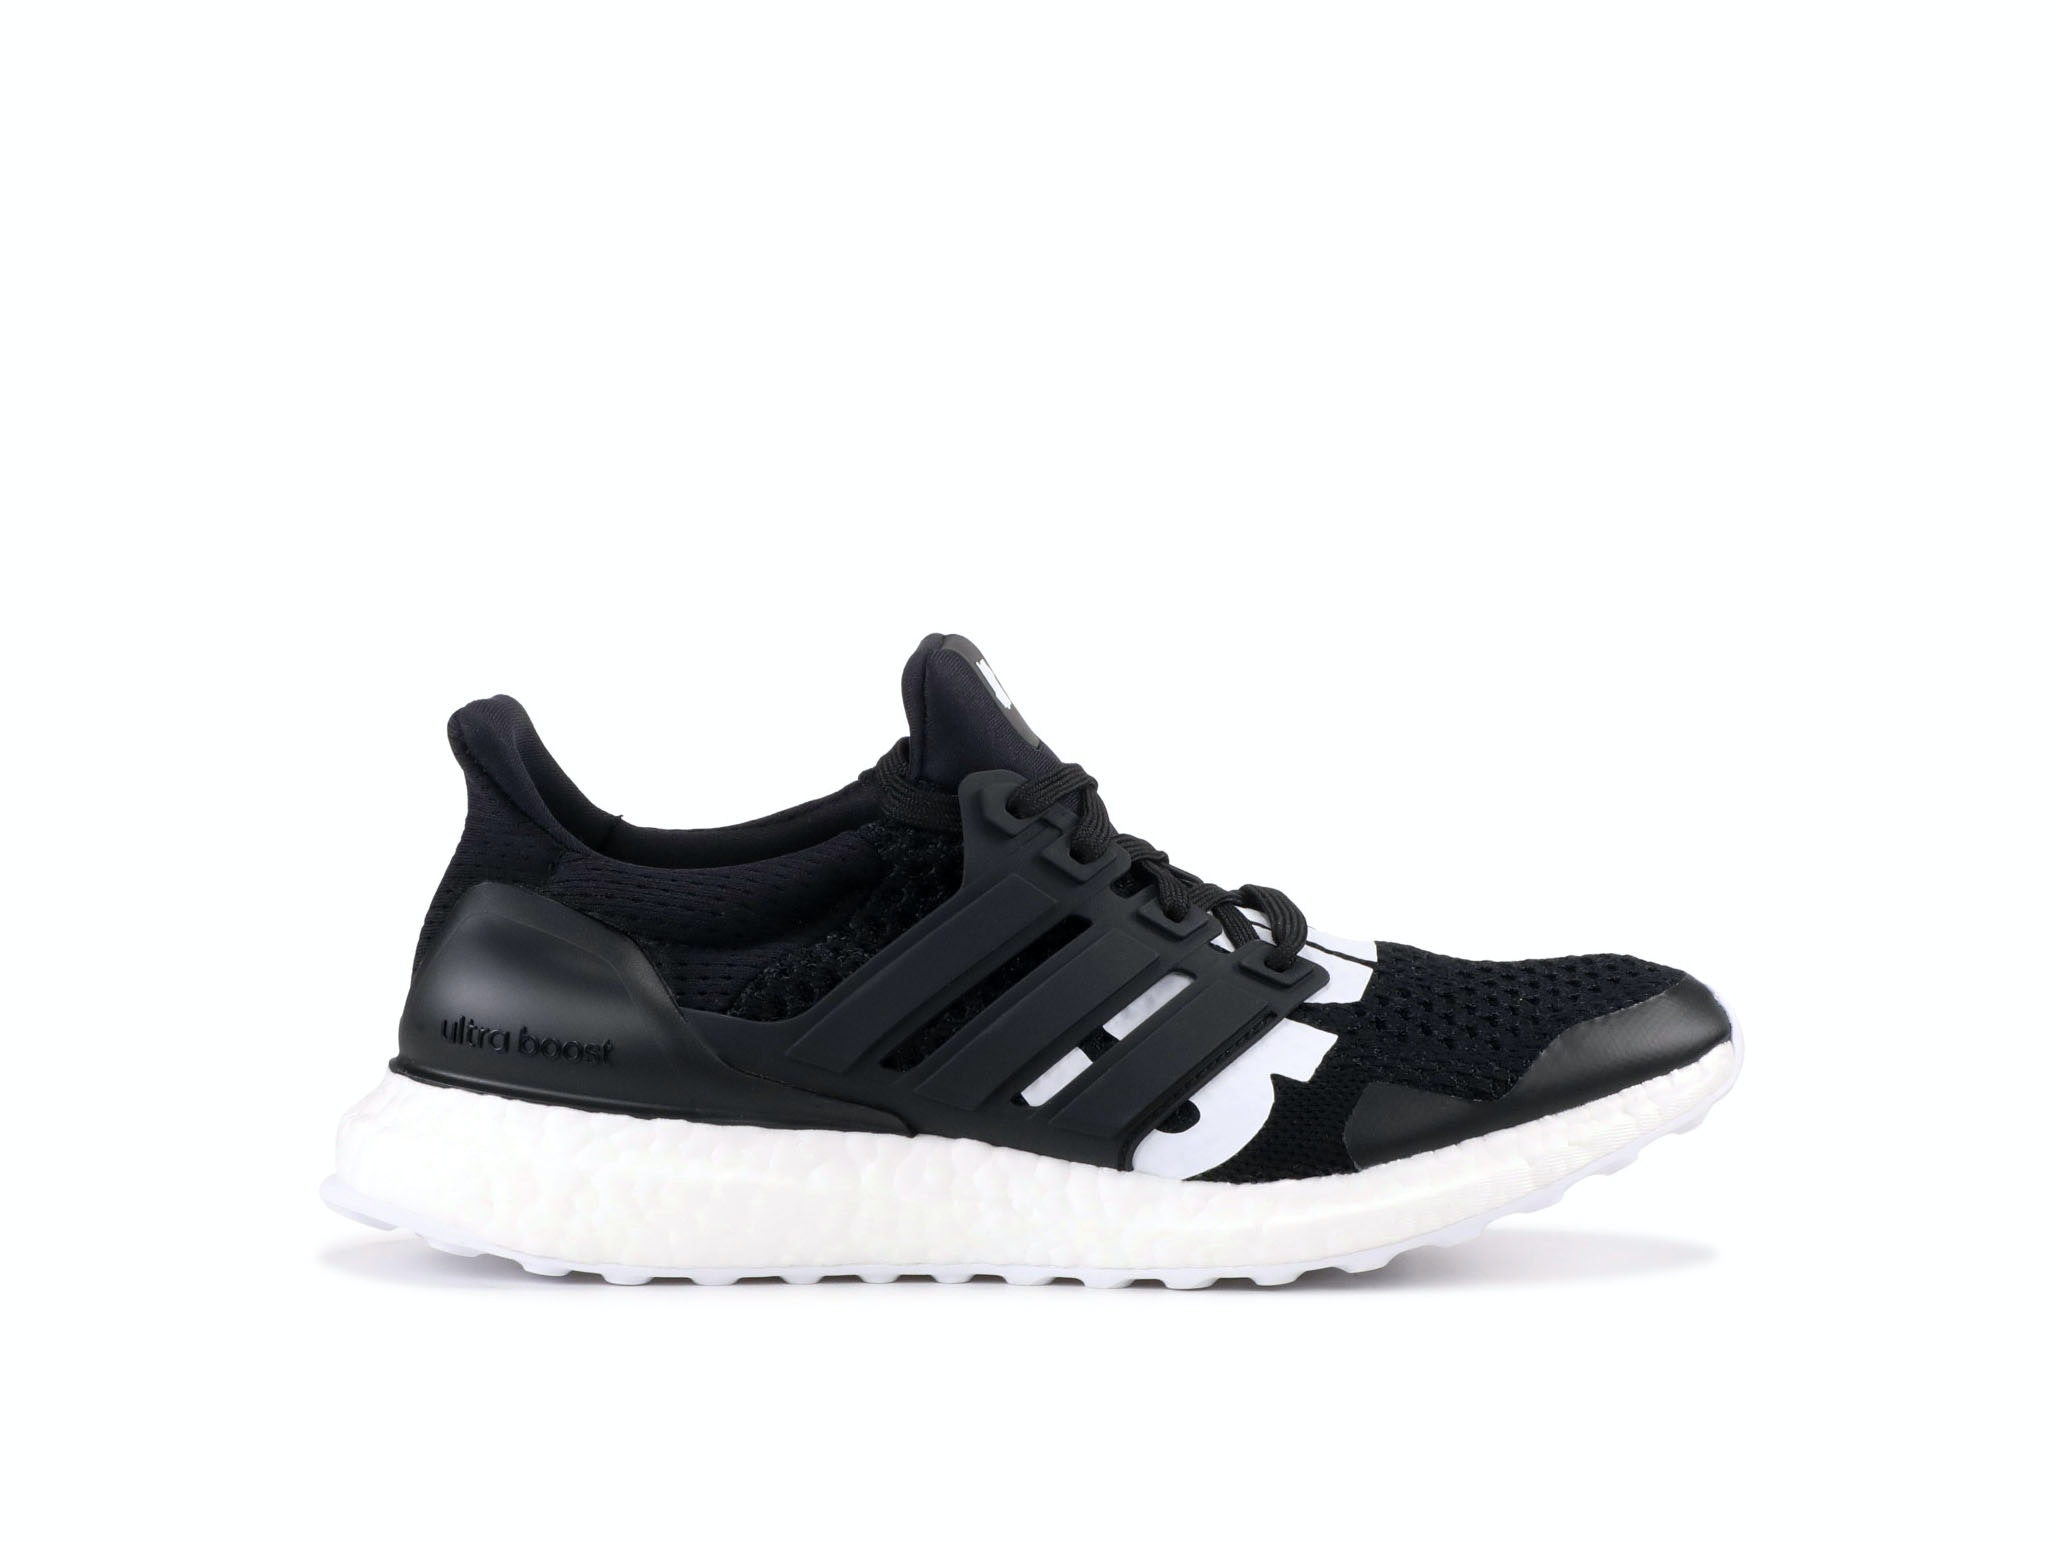 f49f187e7 Shop Black UltraBoost 4.0 x Undefeated Online